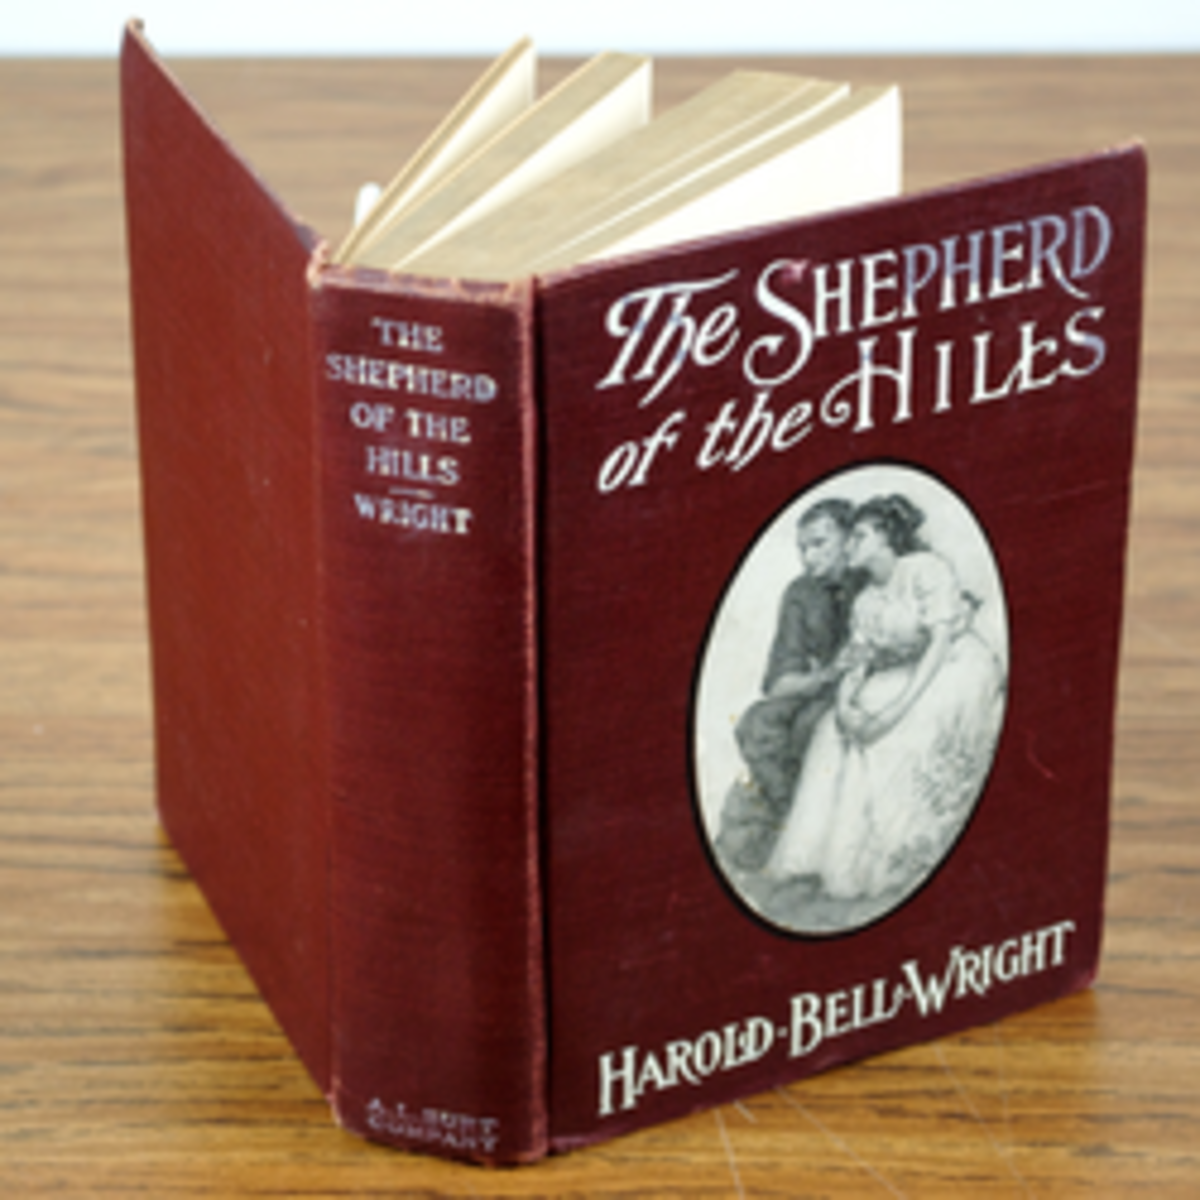 1907 Shepherd of the Hills Book